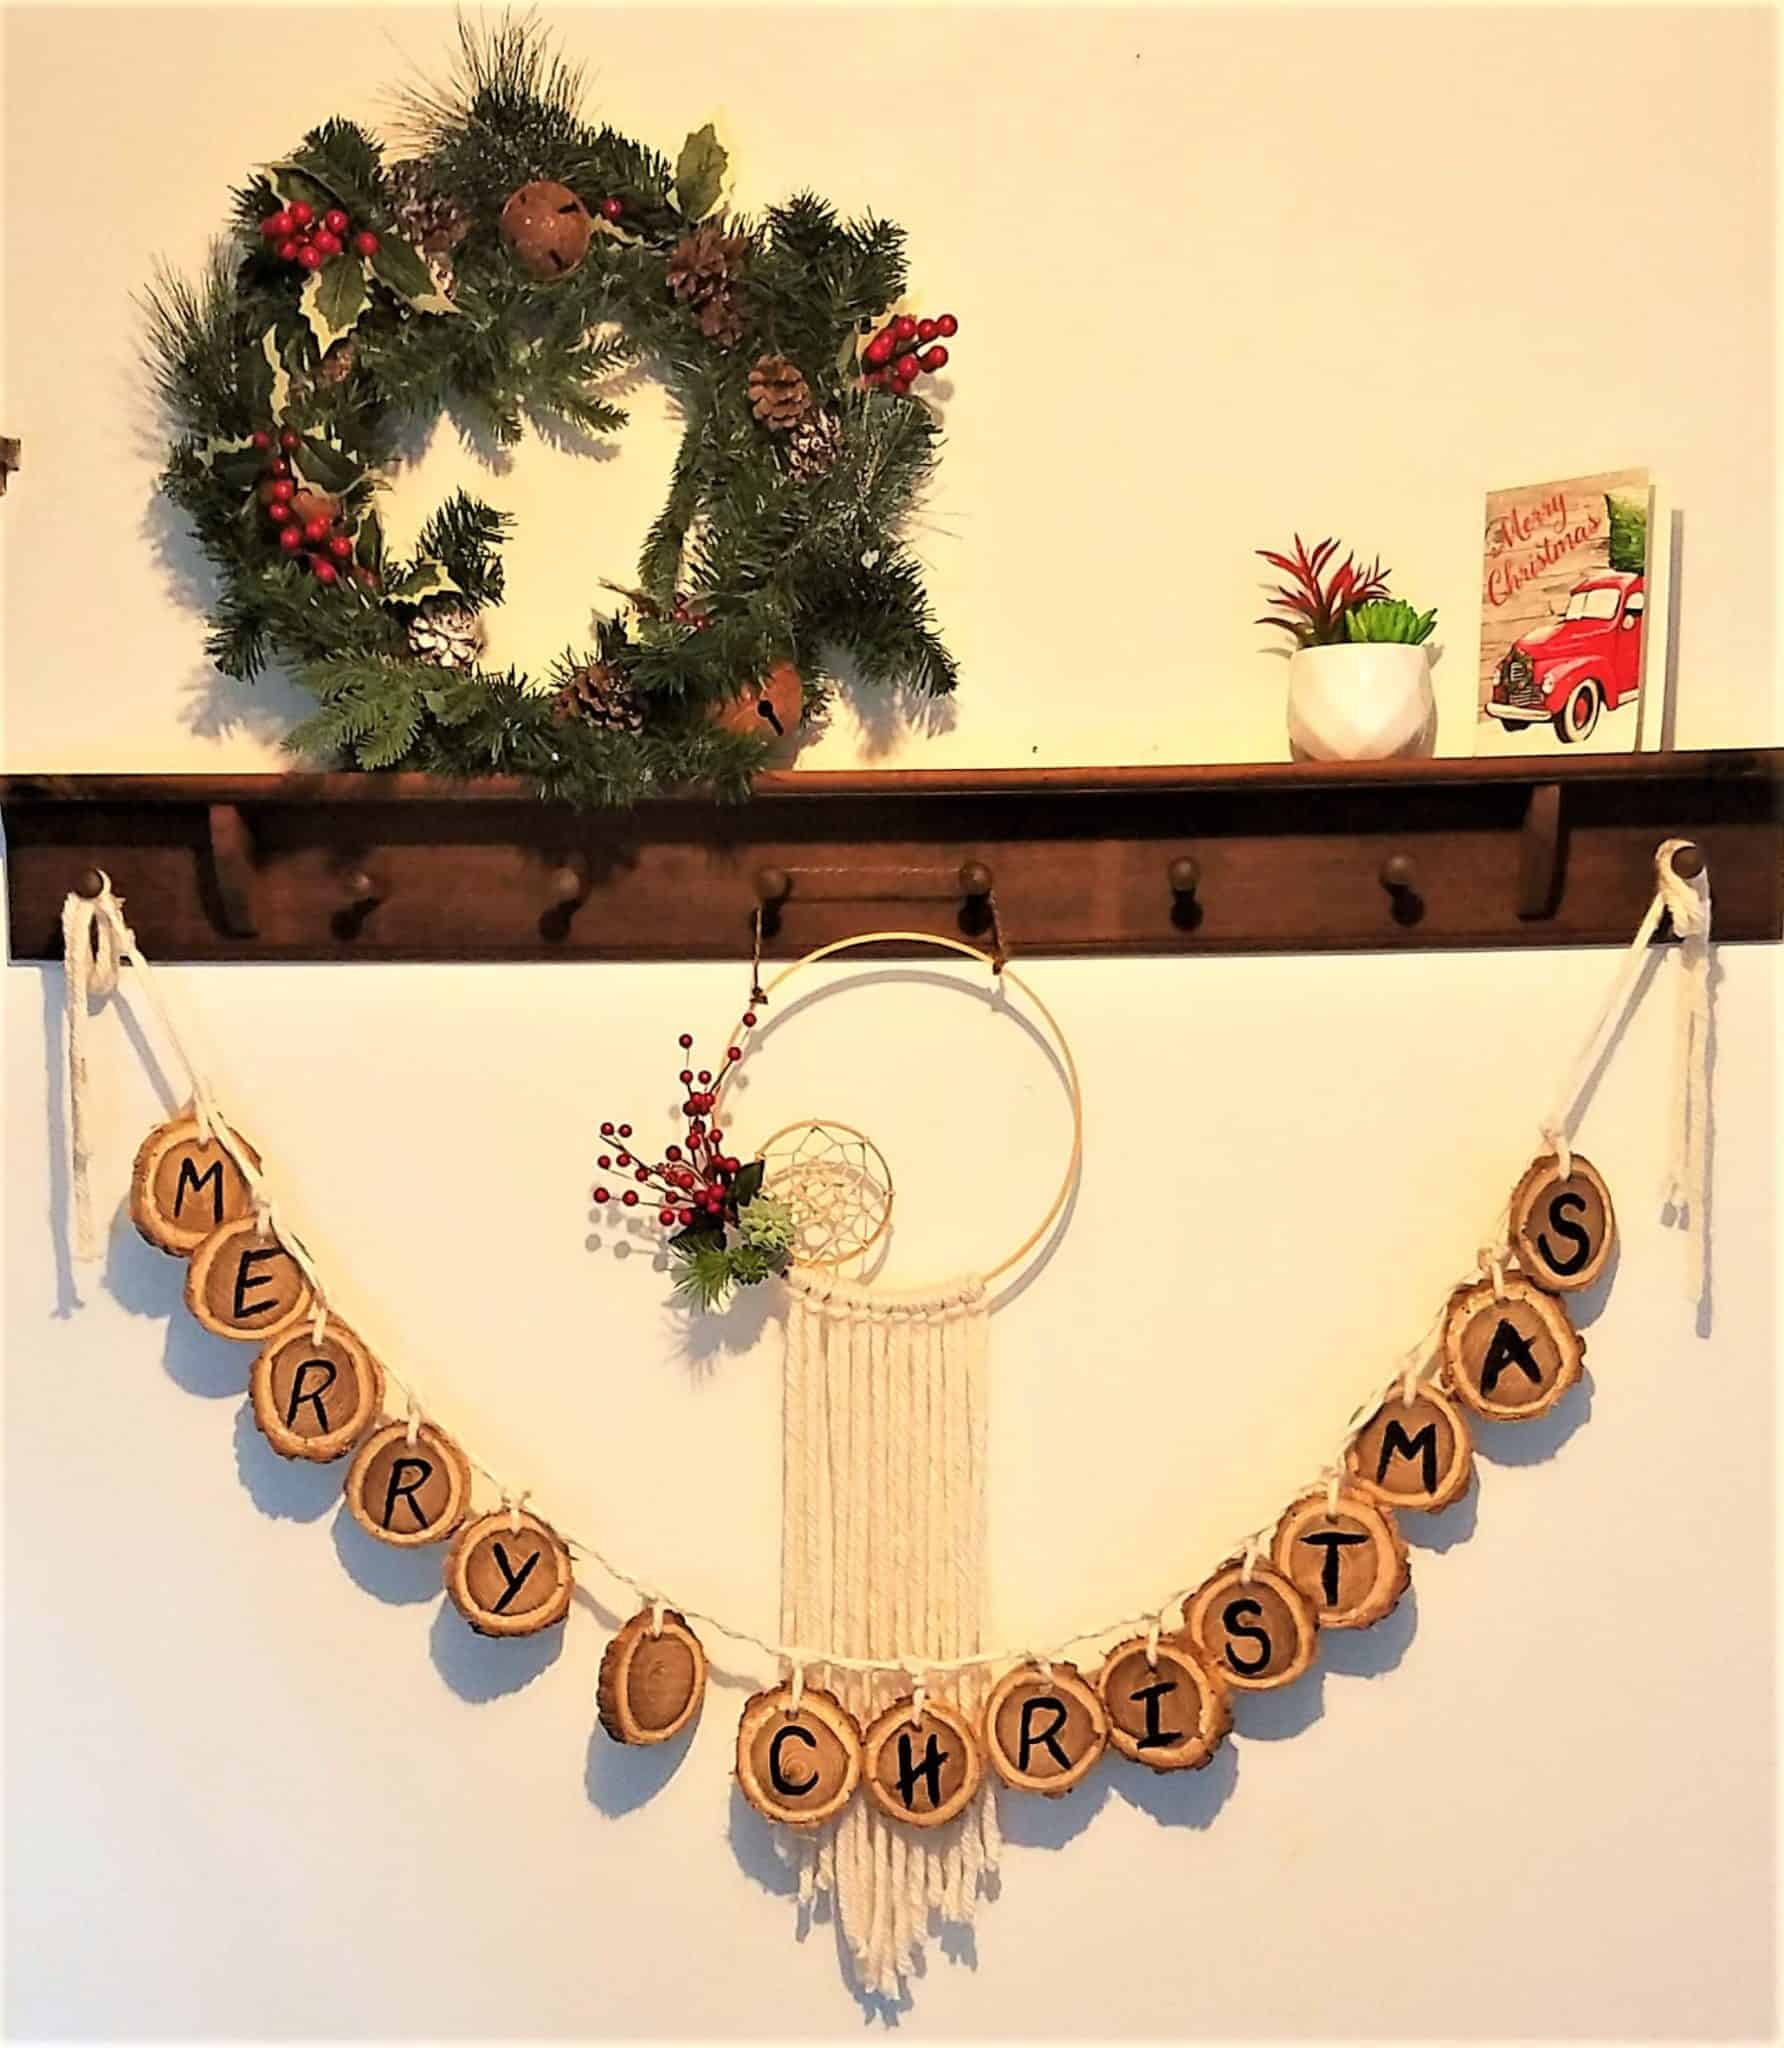 If you are looking for a holiday decor project, you have come to the right place. Here are 20+ amazing holiday wooden DIY projects.